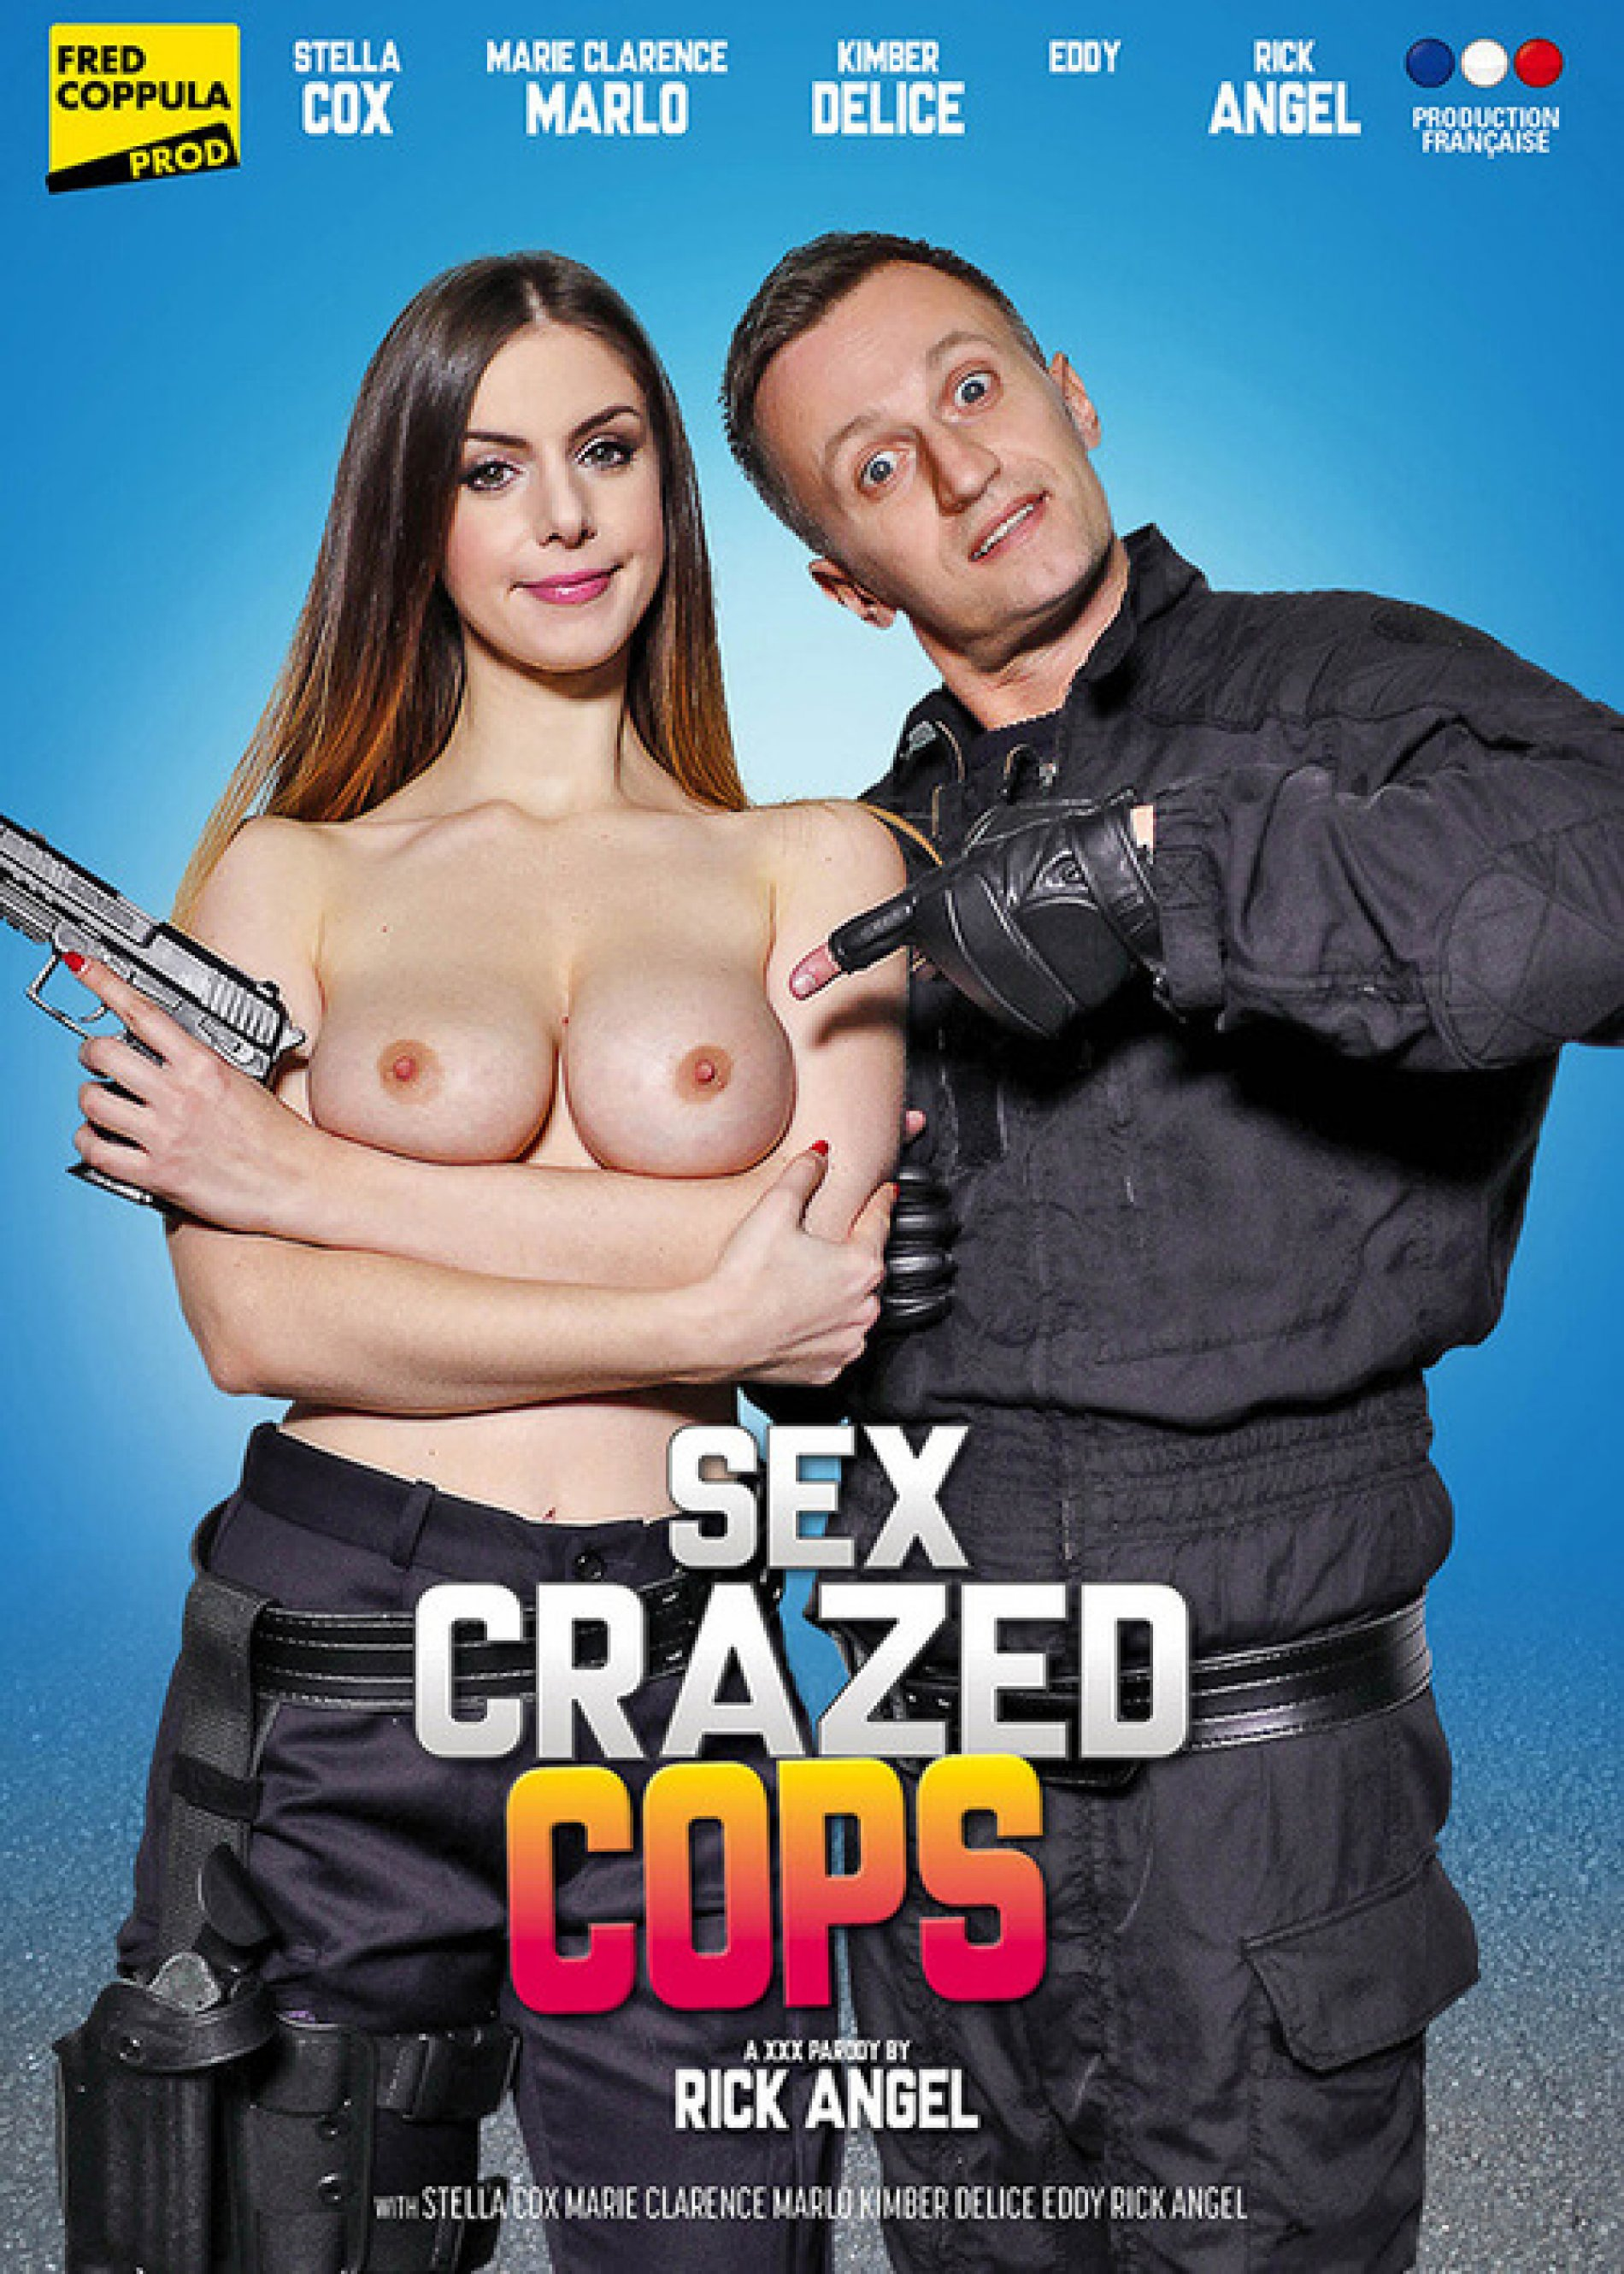 Sex crazed cops